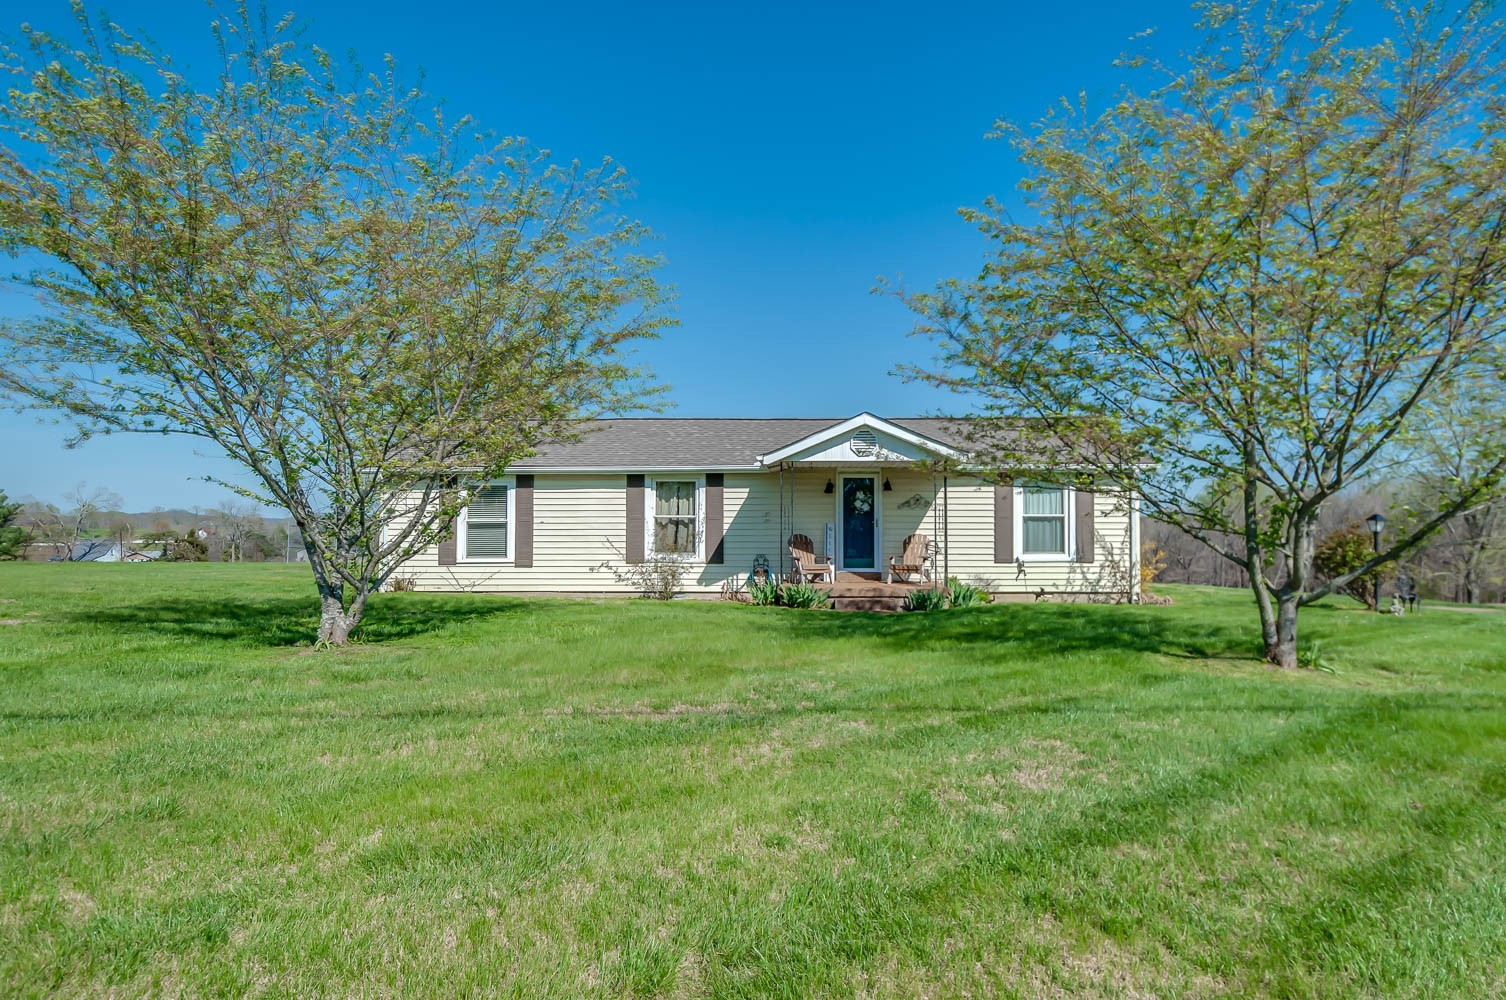 Cute 3 bedroom , 2 bath farm house on 1 acre in desired College Grove, TN!  First showing to be Saturday, April 10th, 2021, from 2-4 at the open house.